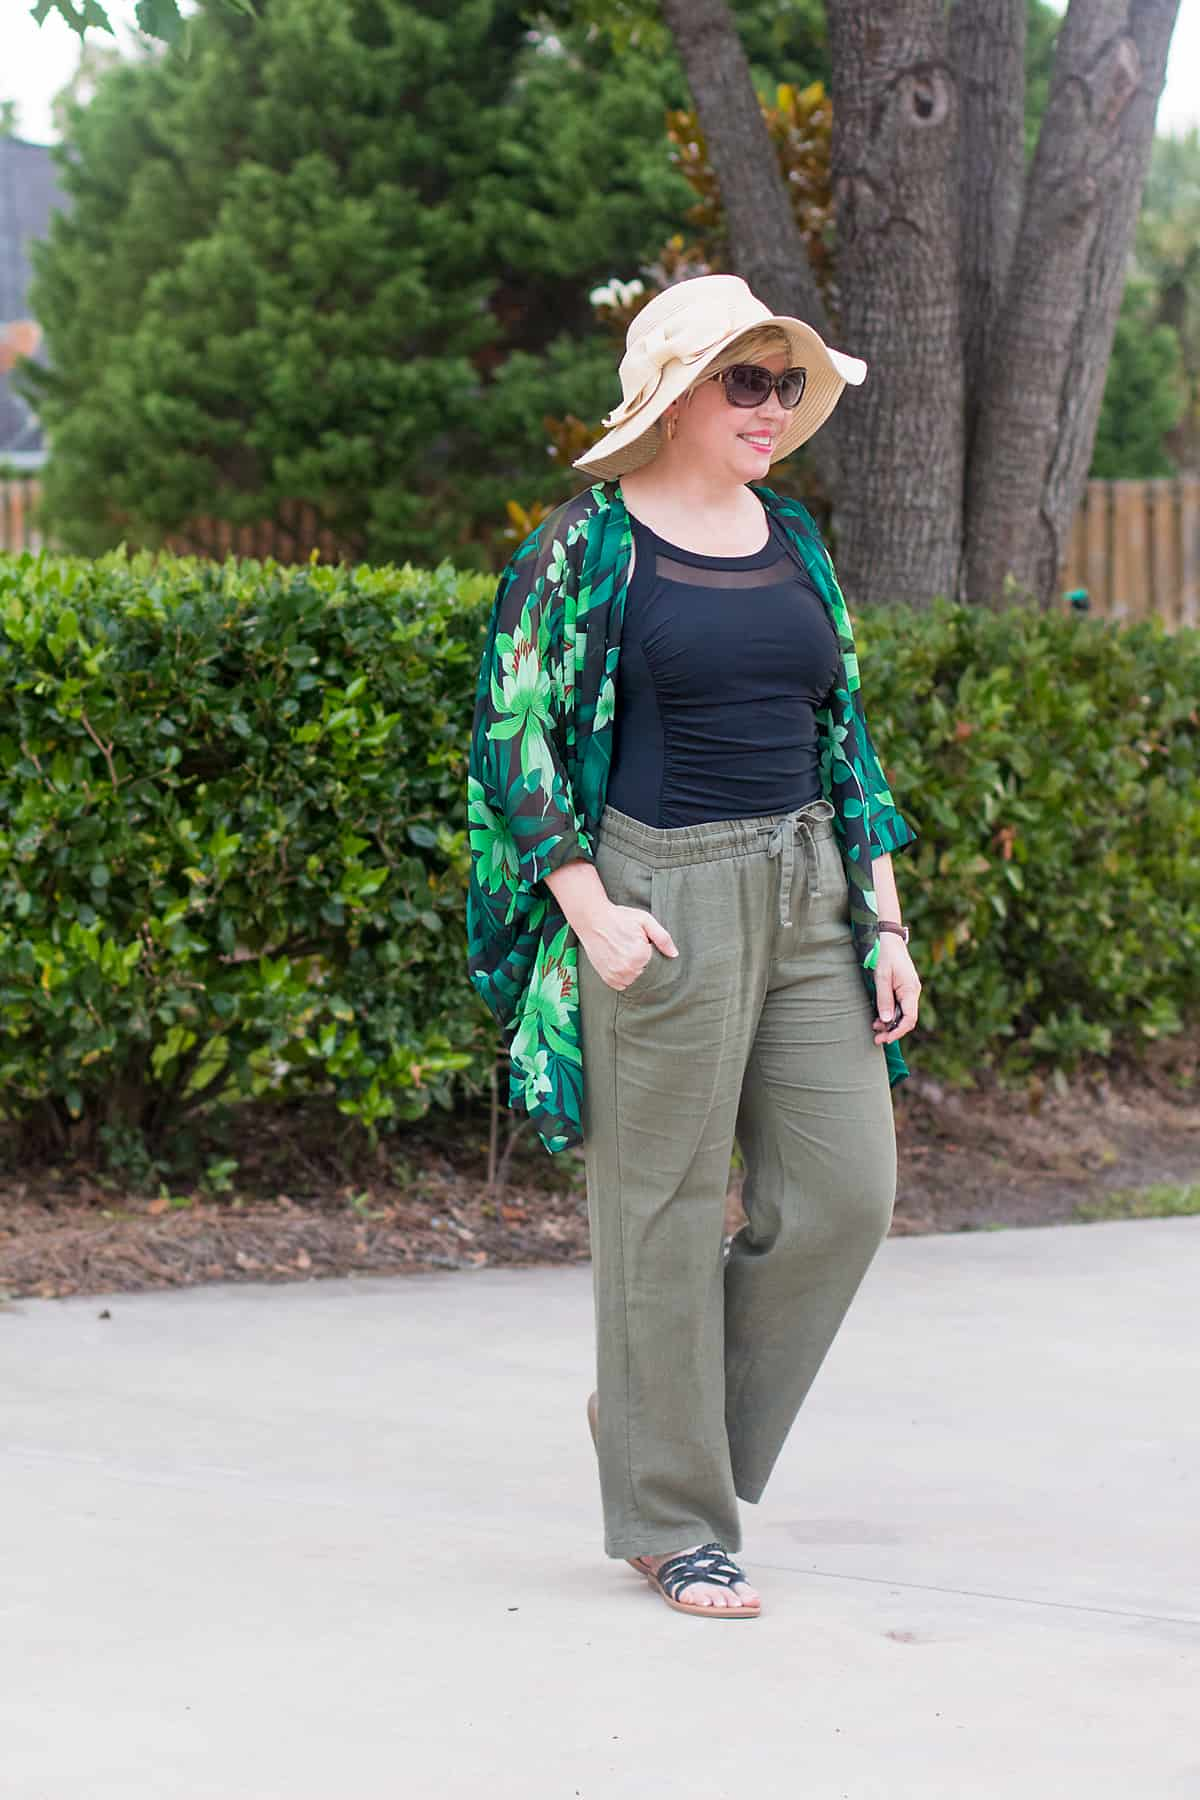 floppy hat with bow outfit